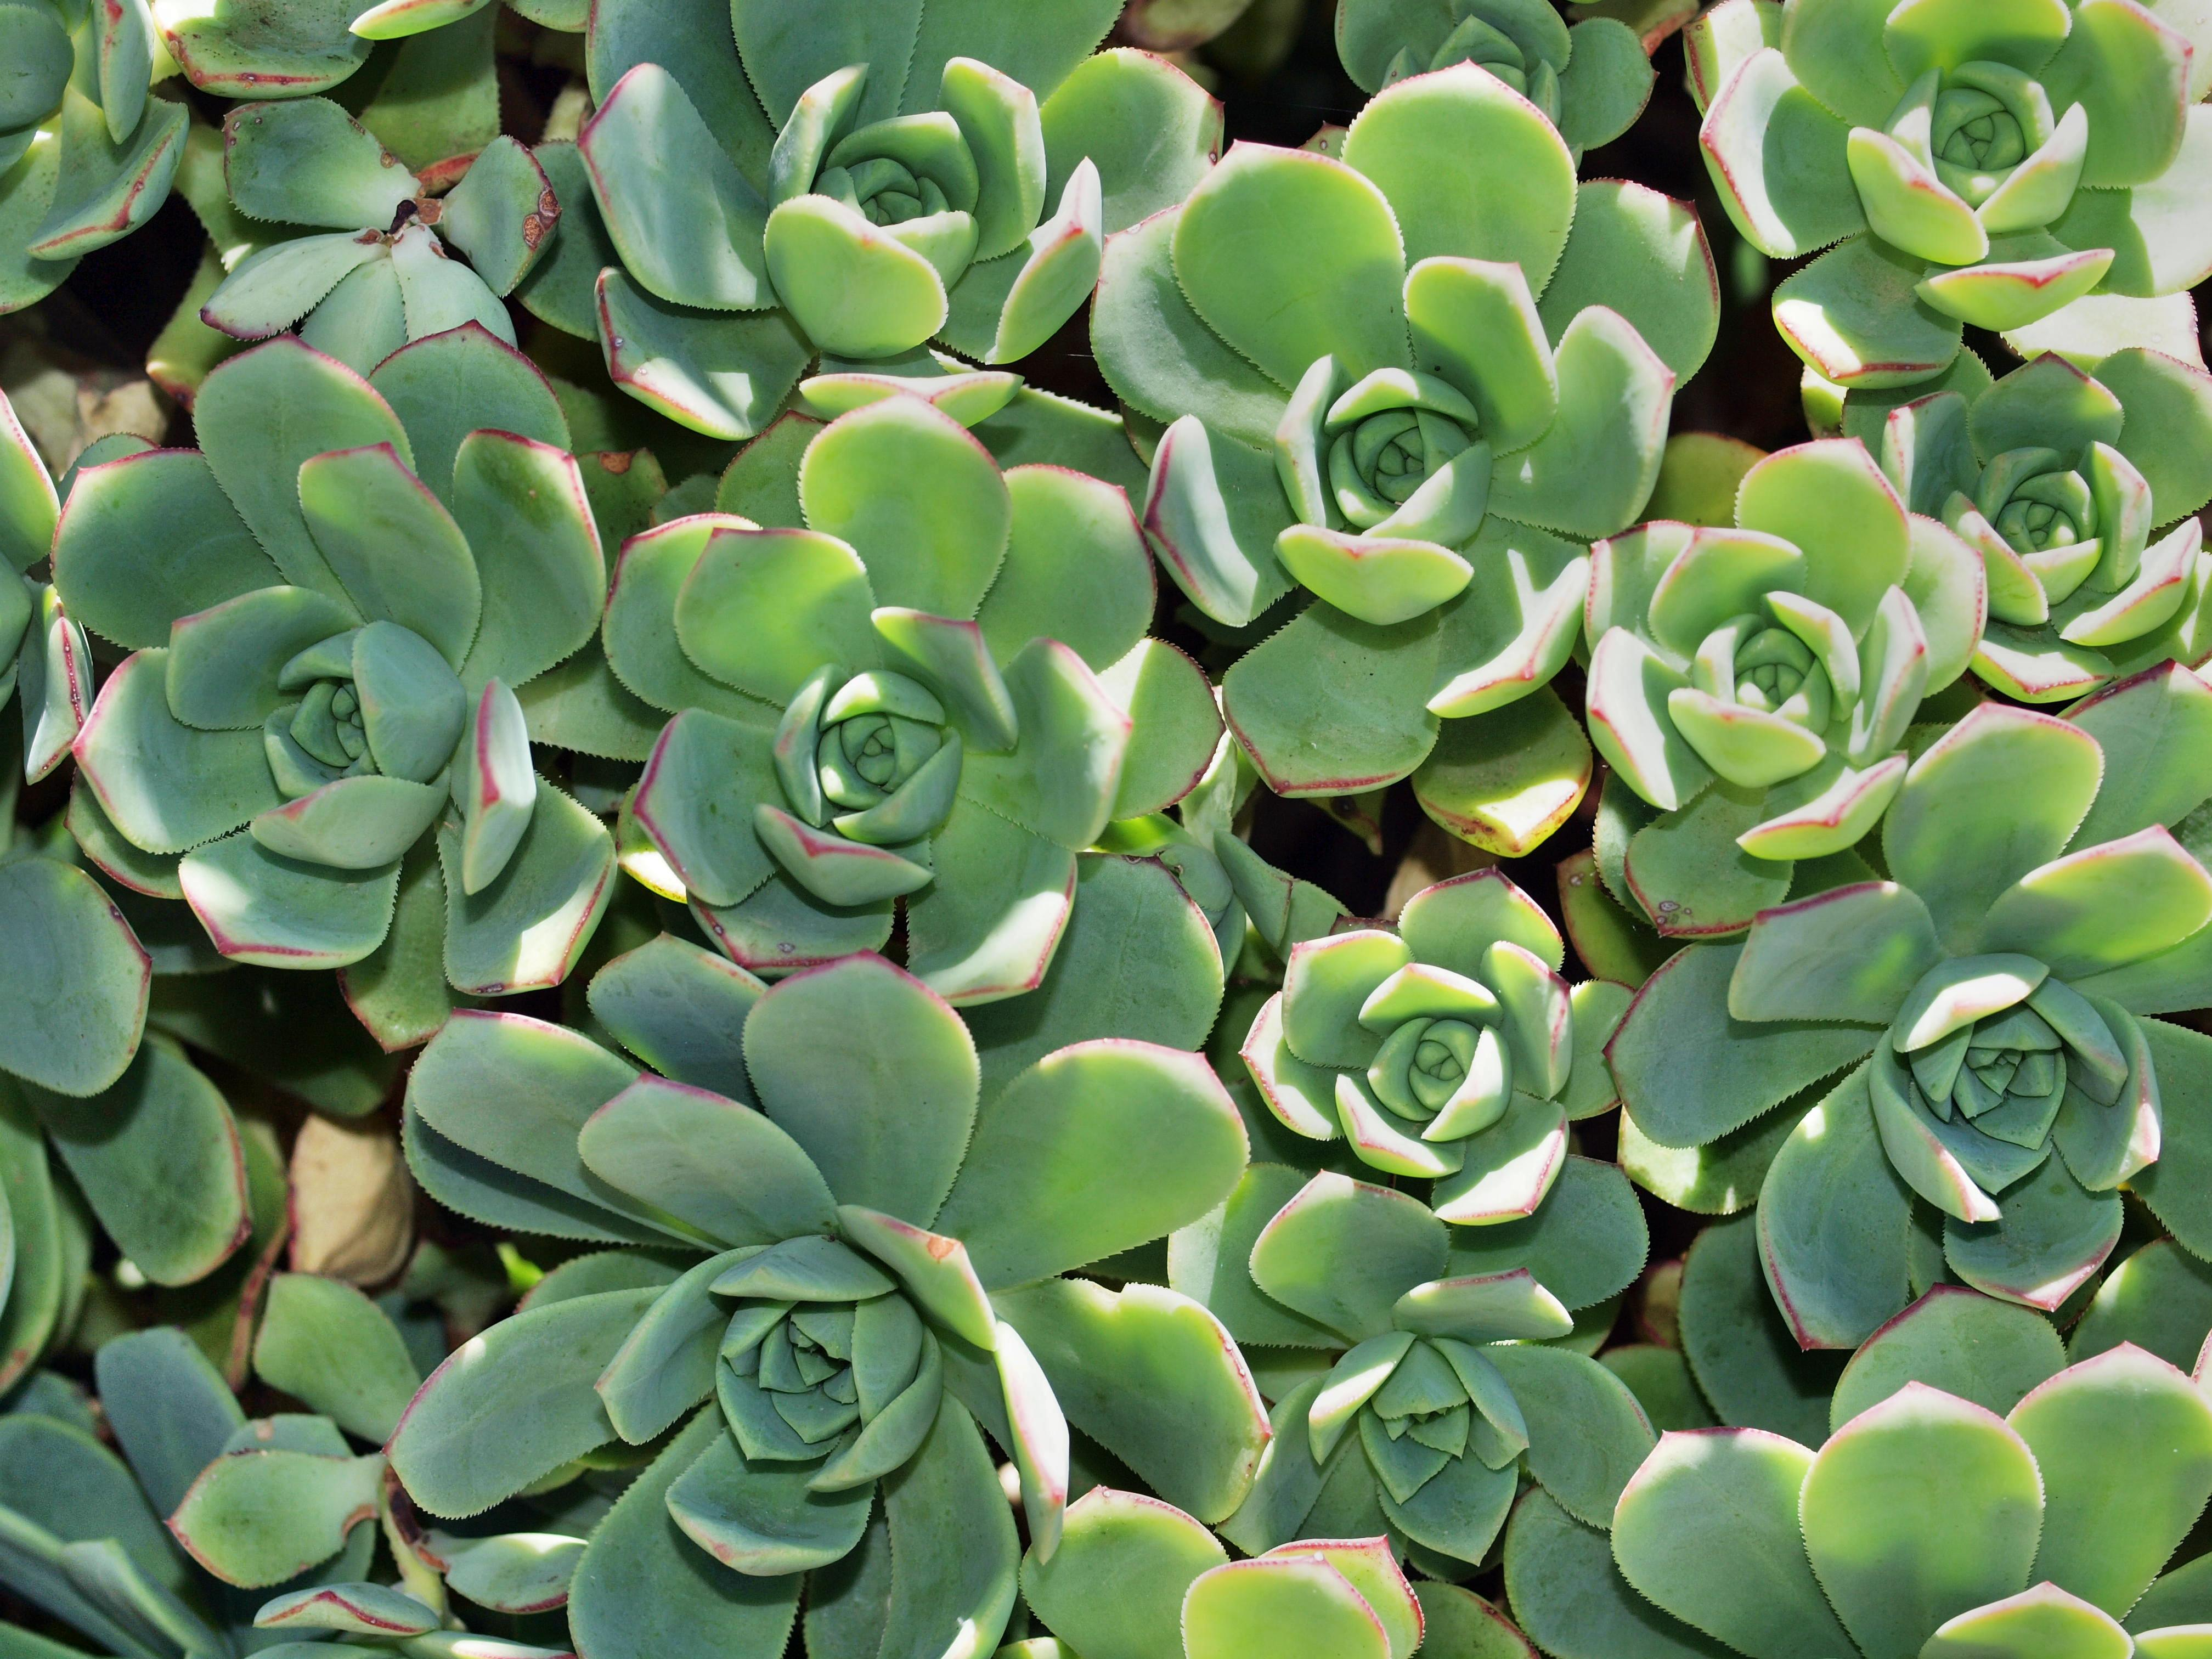 This should be Aeonium-3.jpeg.  Is it missing?